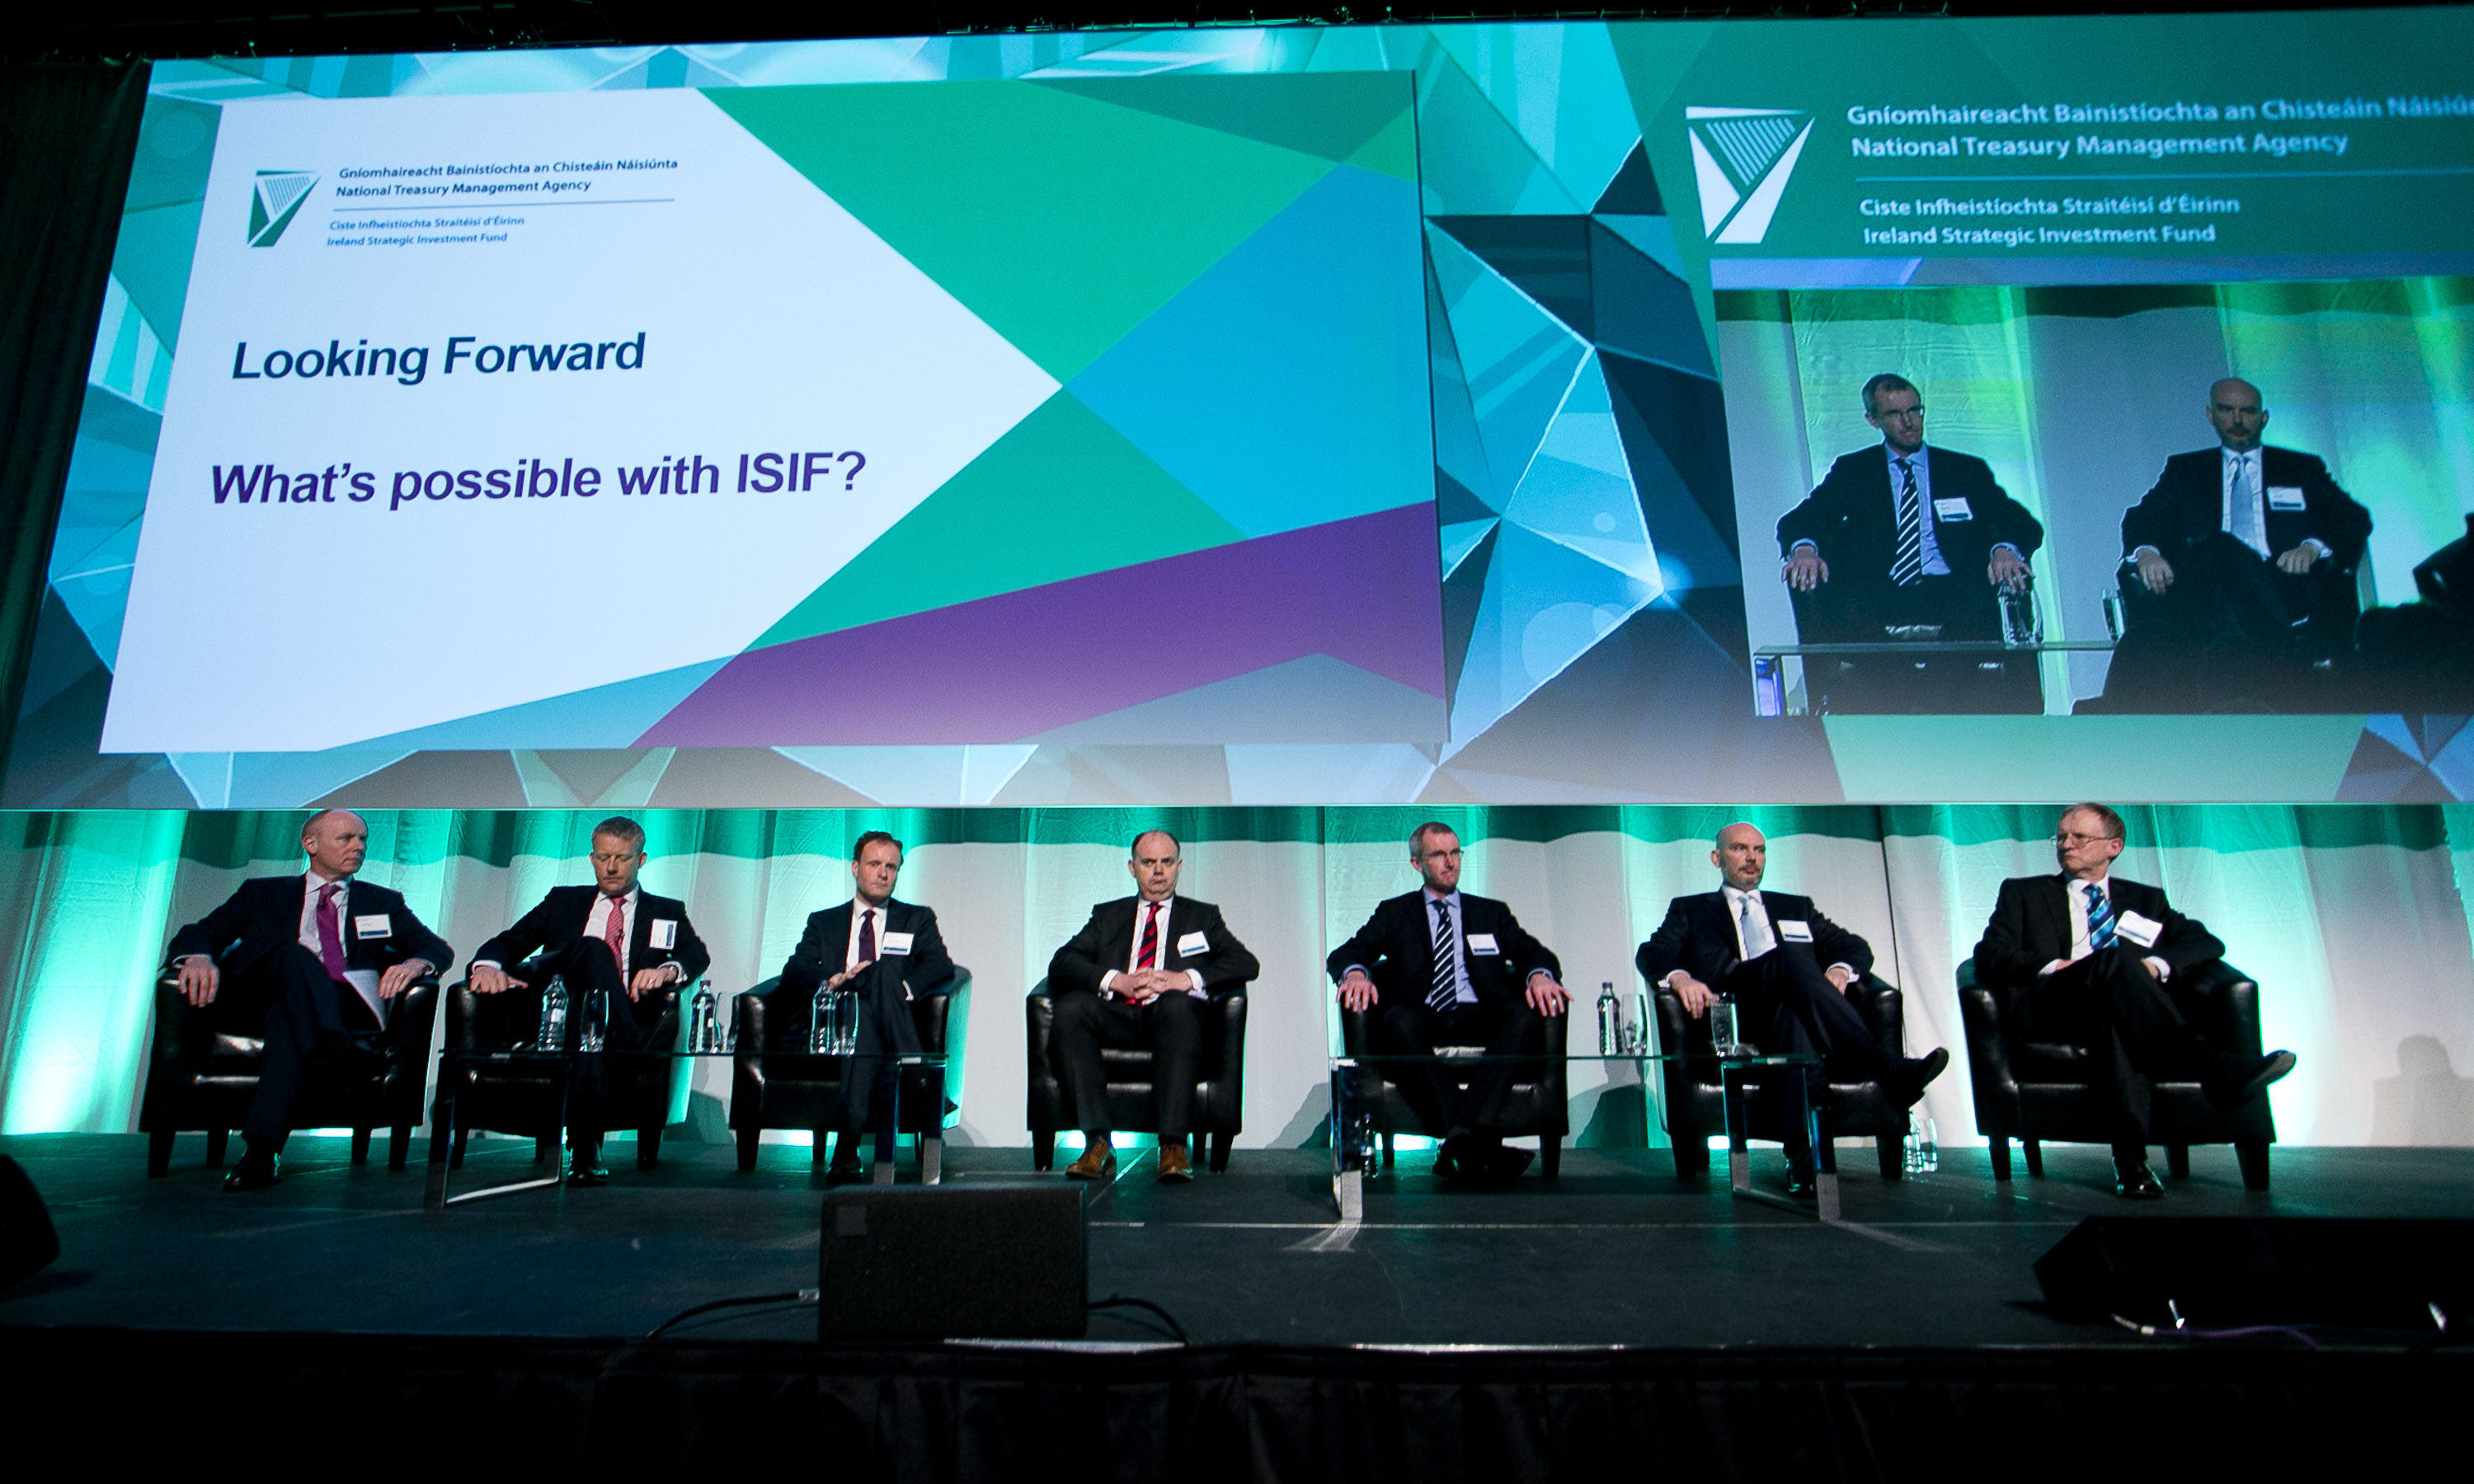 ISIF Market Engagement Event, April 2016, ISIF Team on stage